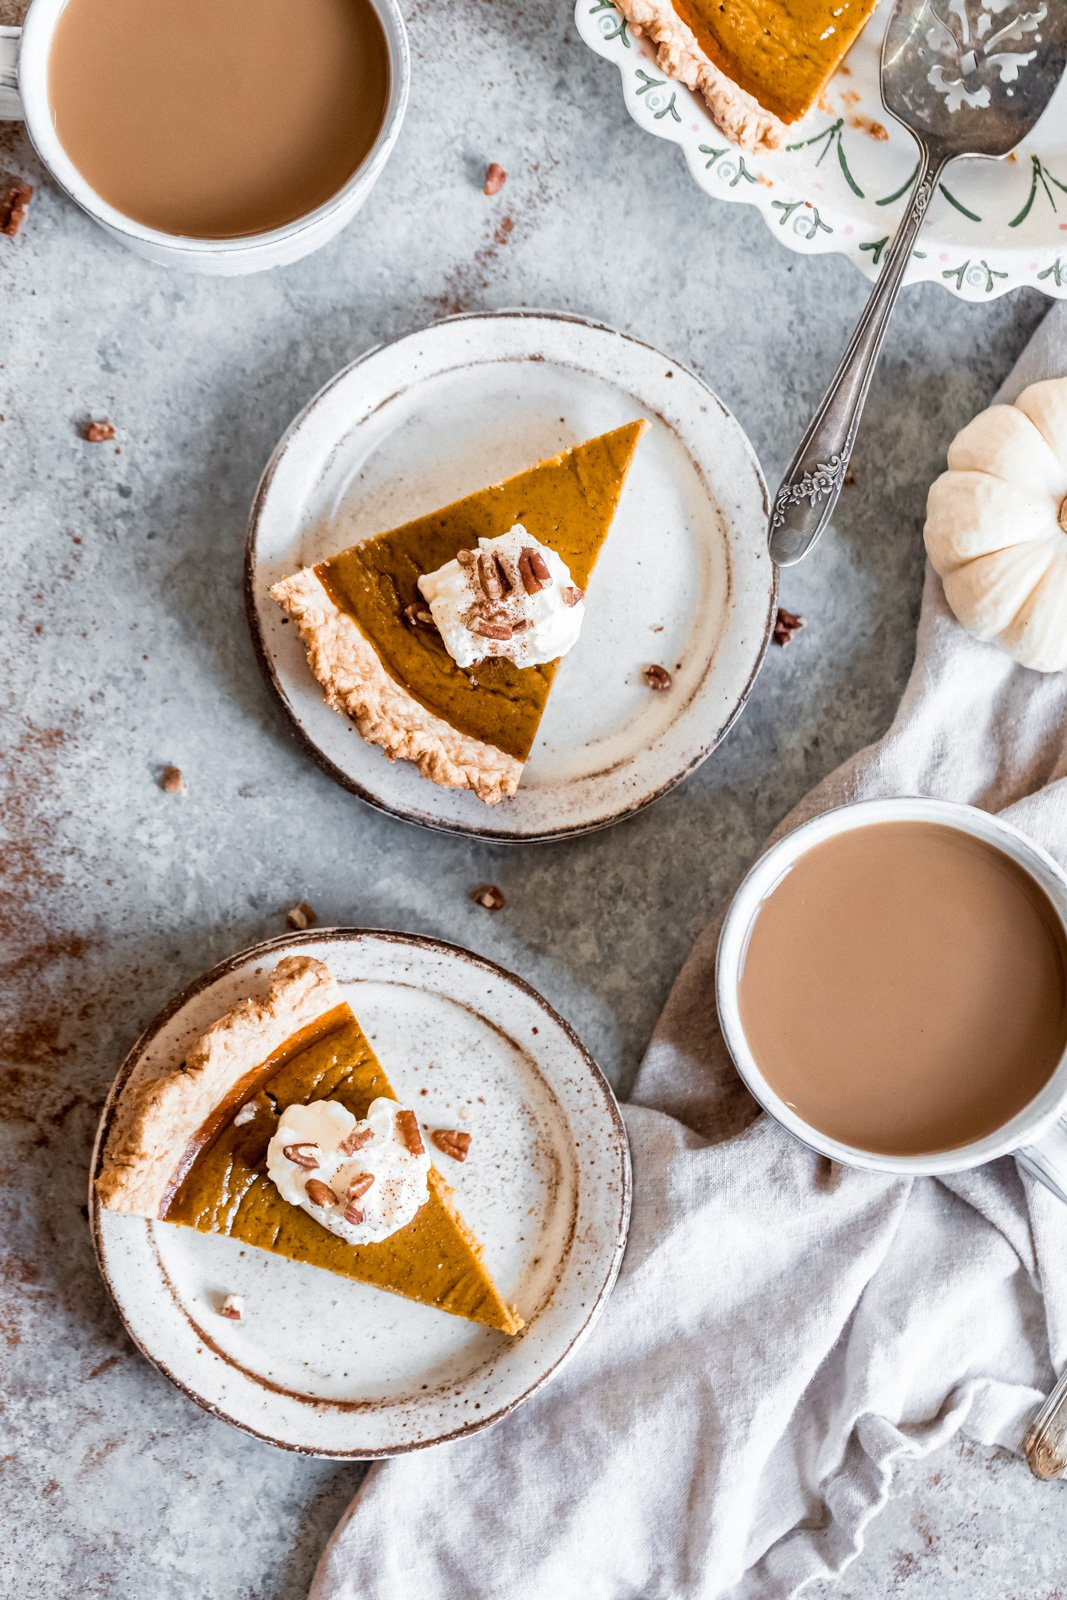 healthy pumpkin pie on two plates next to two mugs of coffee